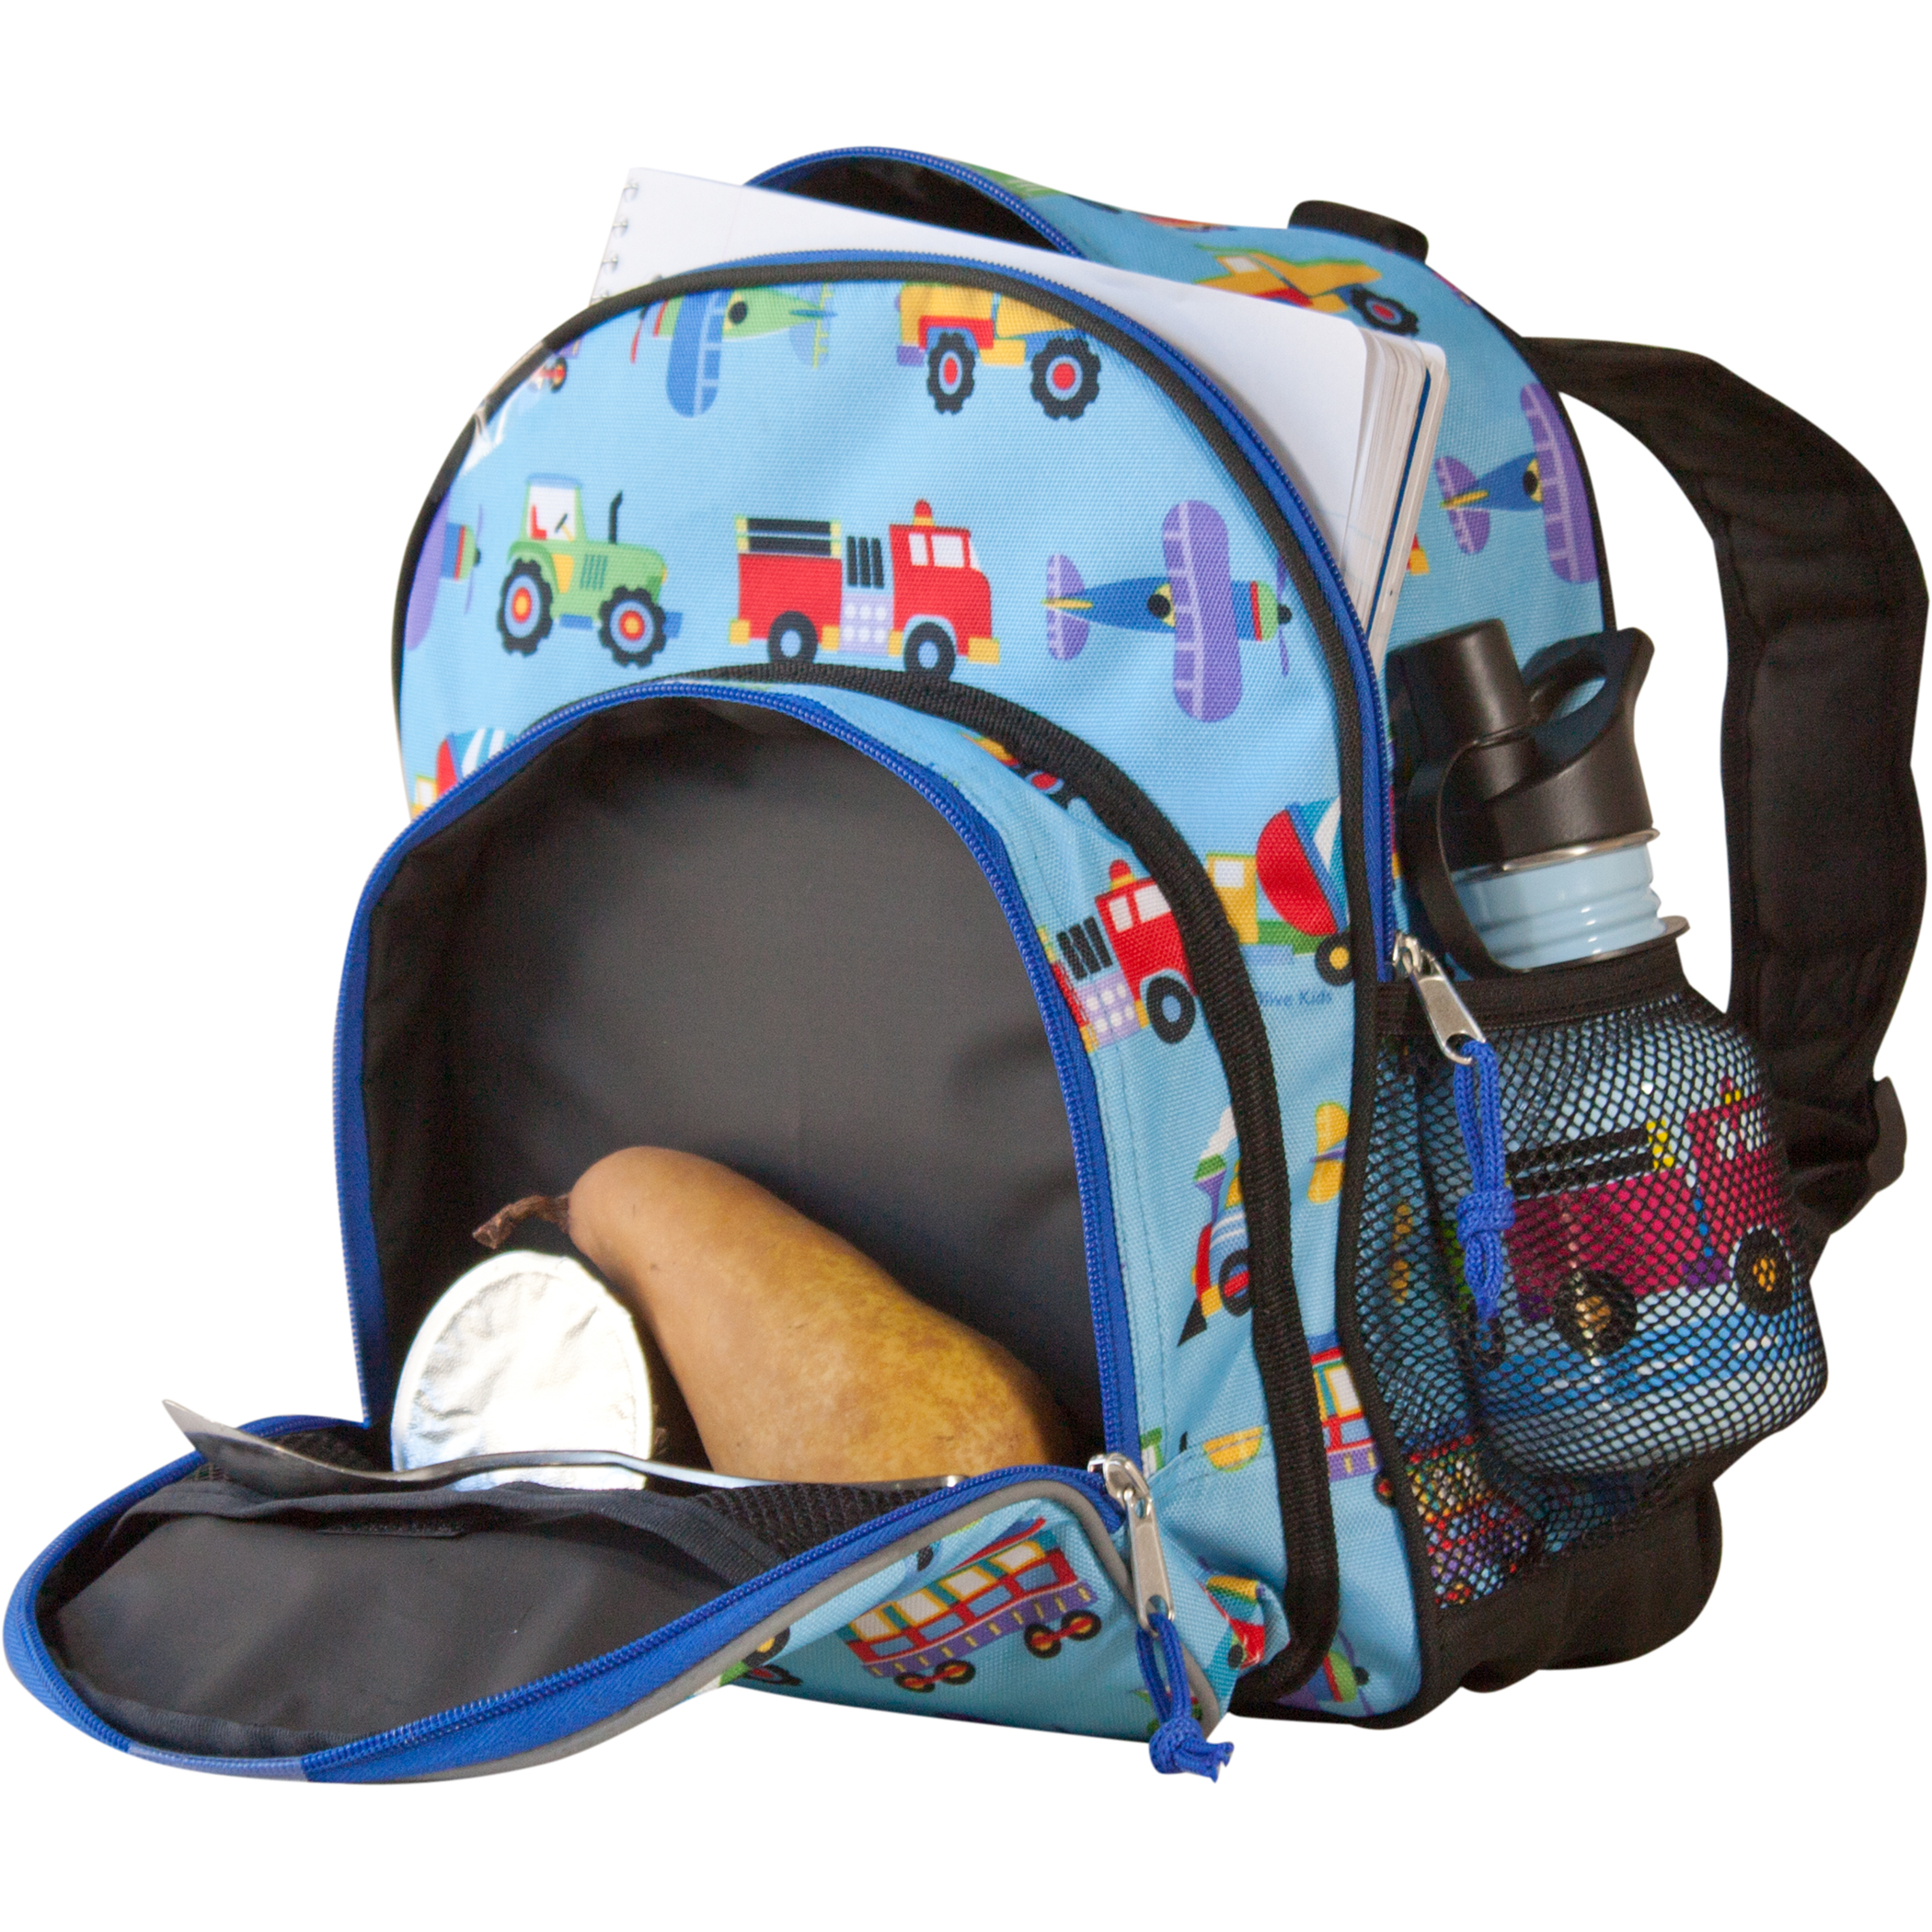 Boys Blue Back Pack Train Plane Truck Toddler Snack School Bag Kids Children New